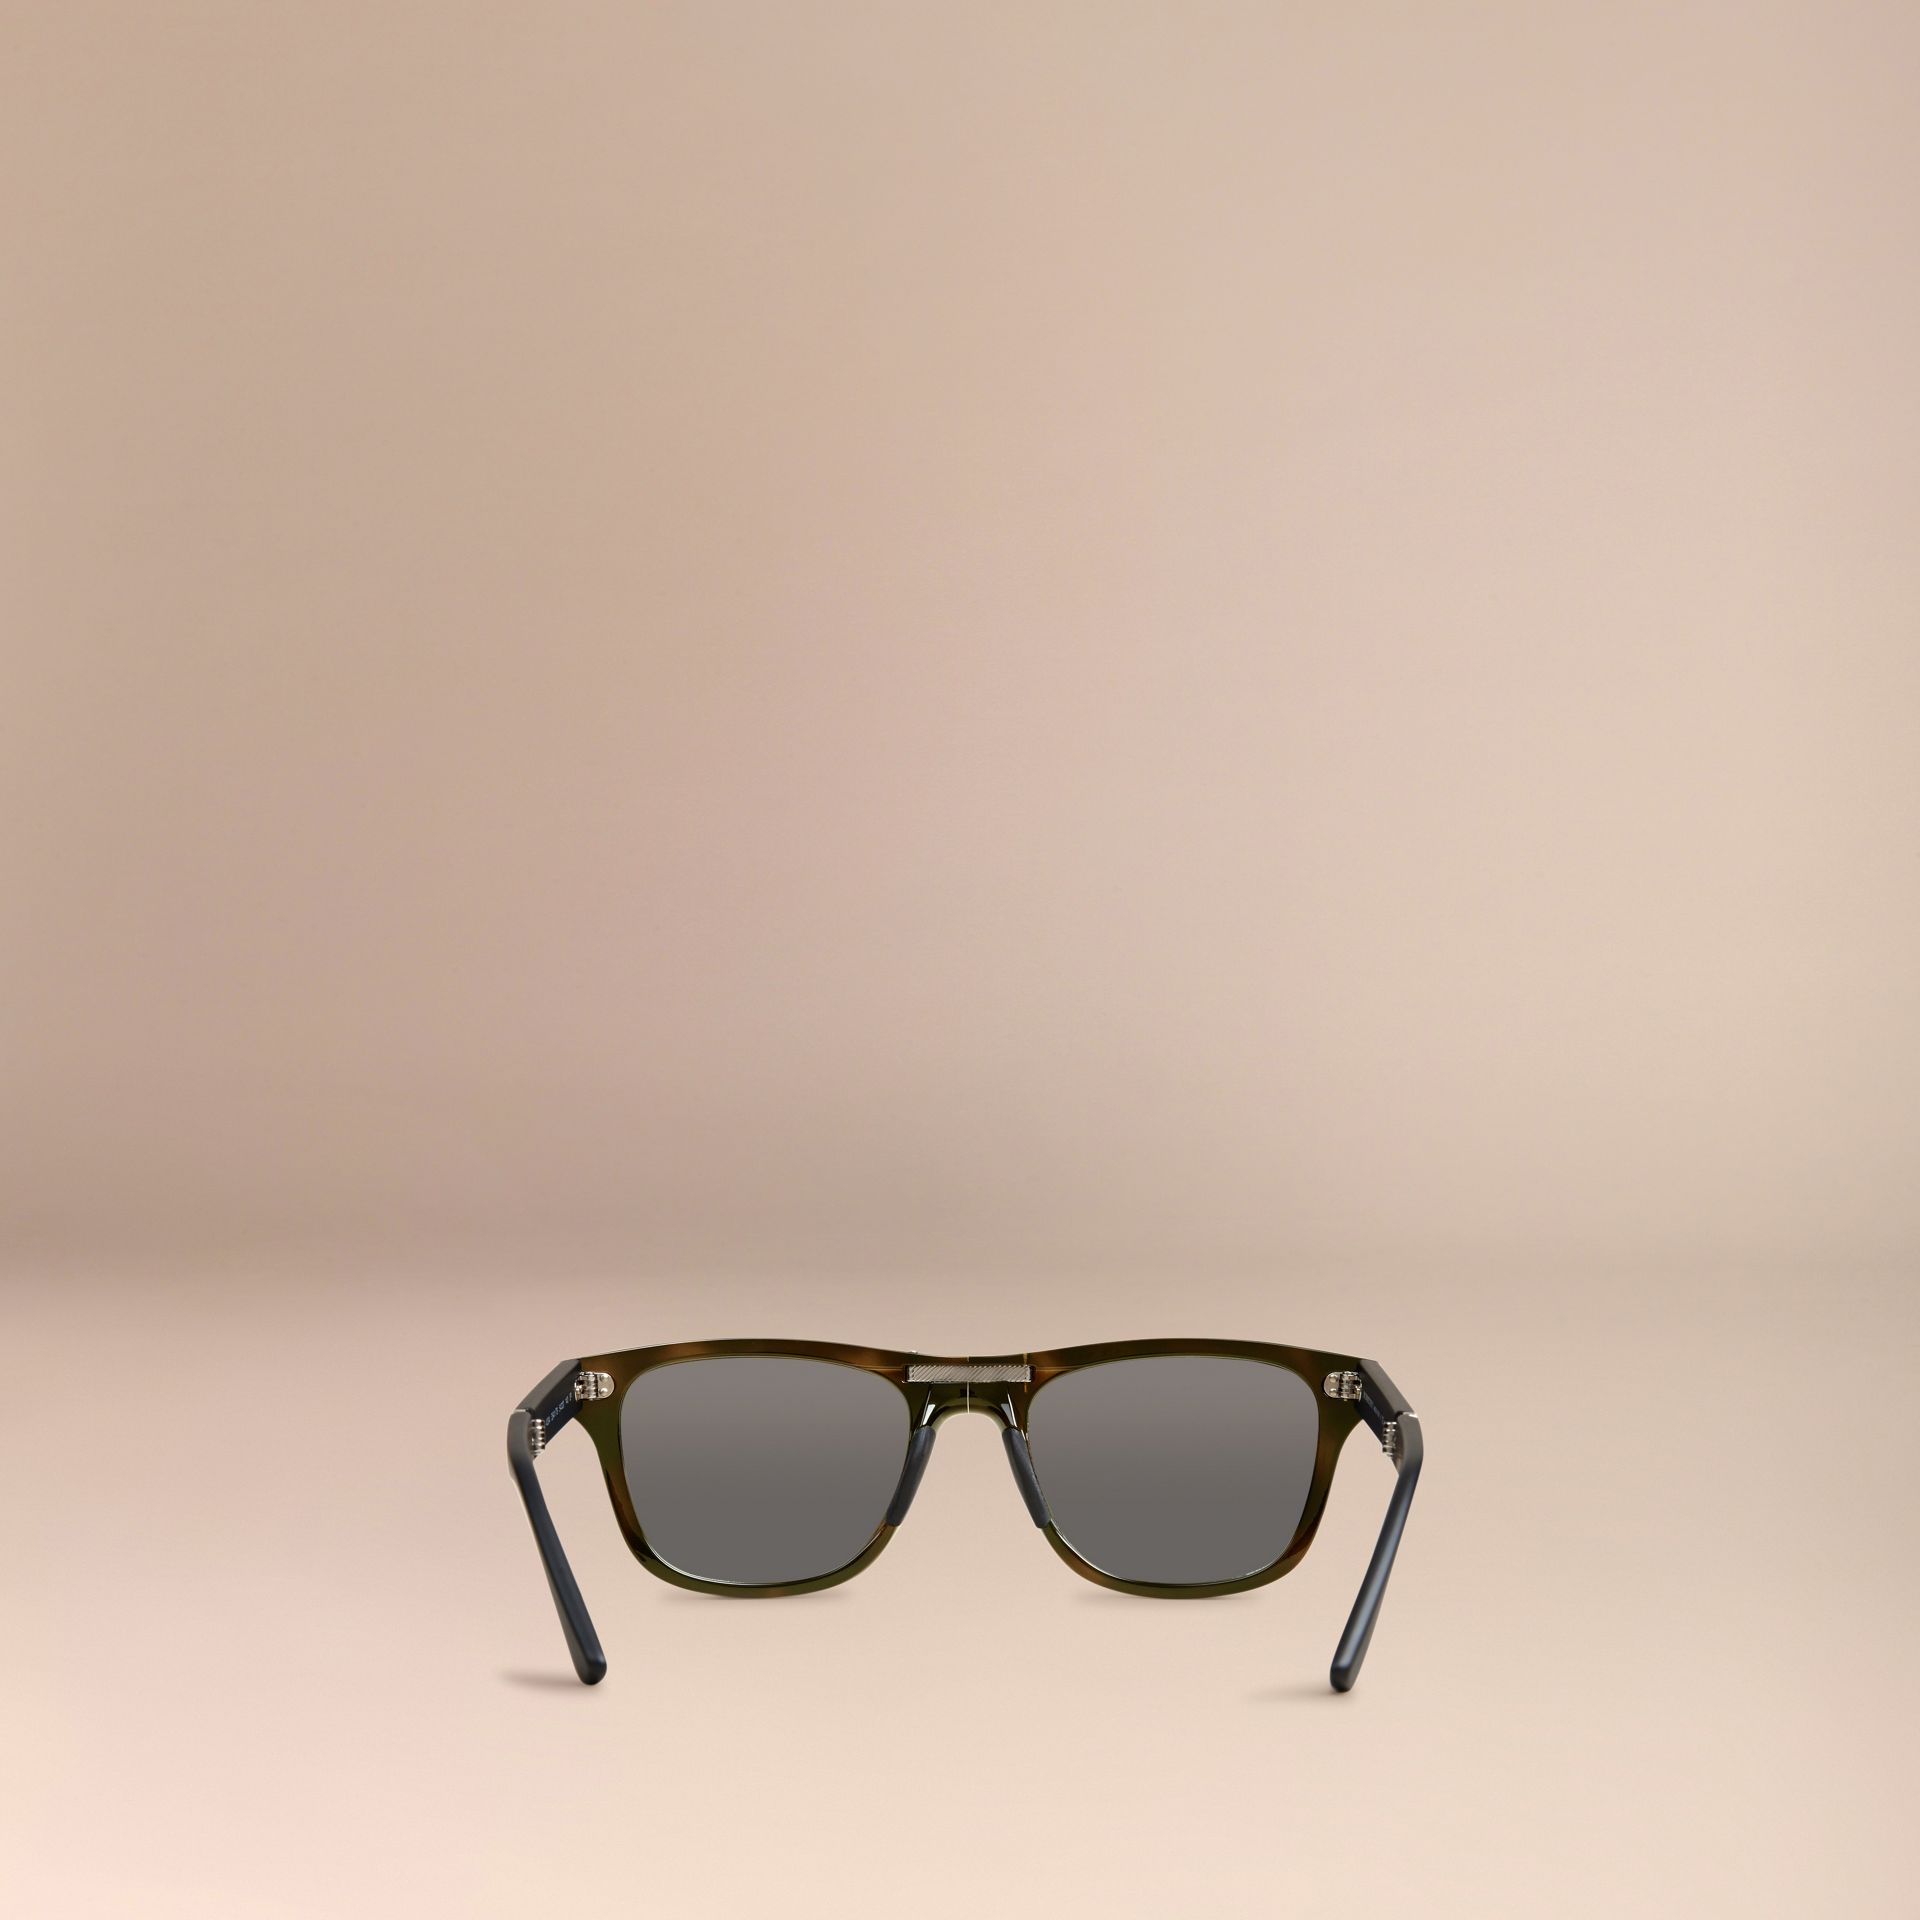 Folding Rectangular Frame Polarised Sunglasses in Grey - Men | Burberry United States - gallery image 3